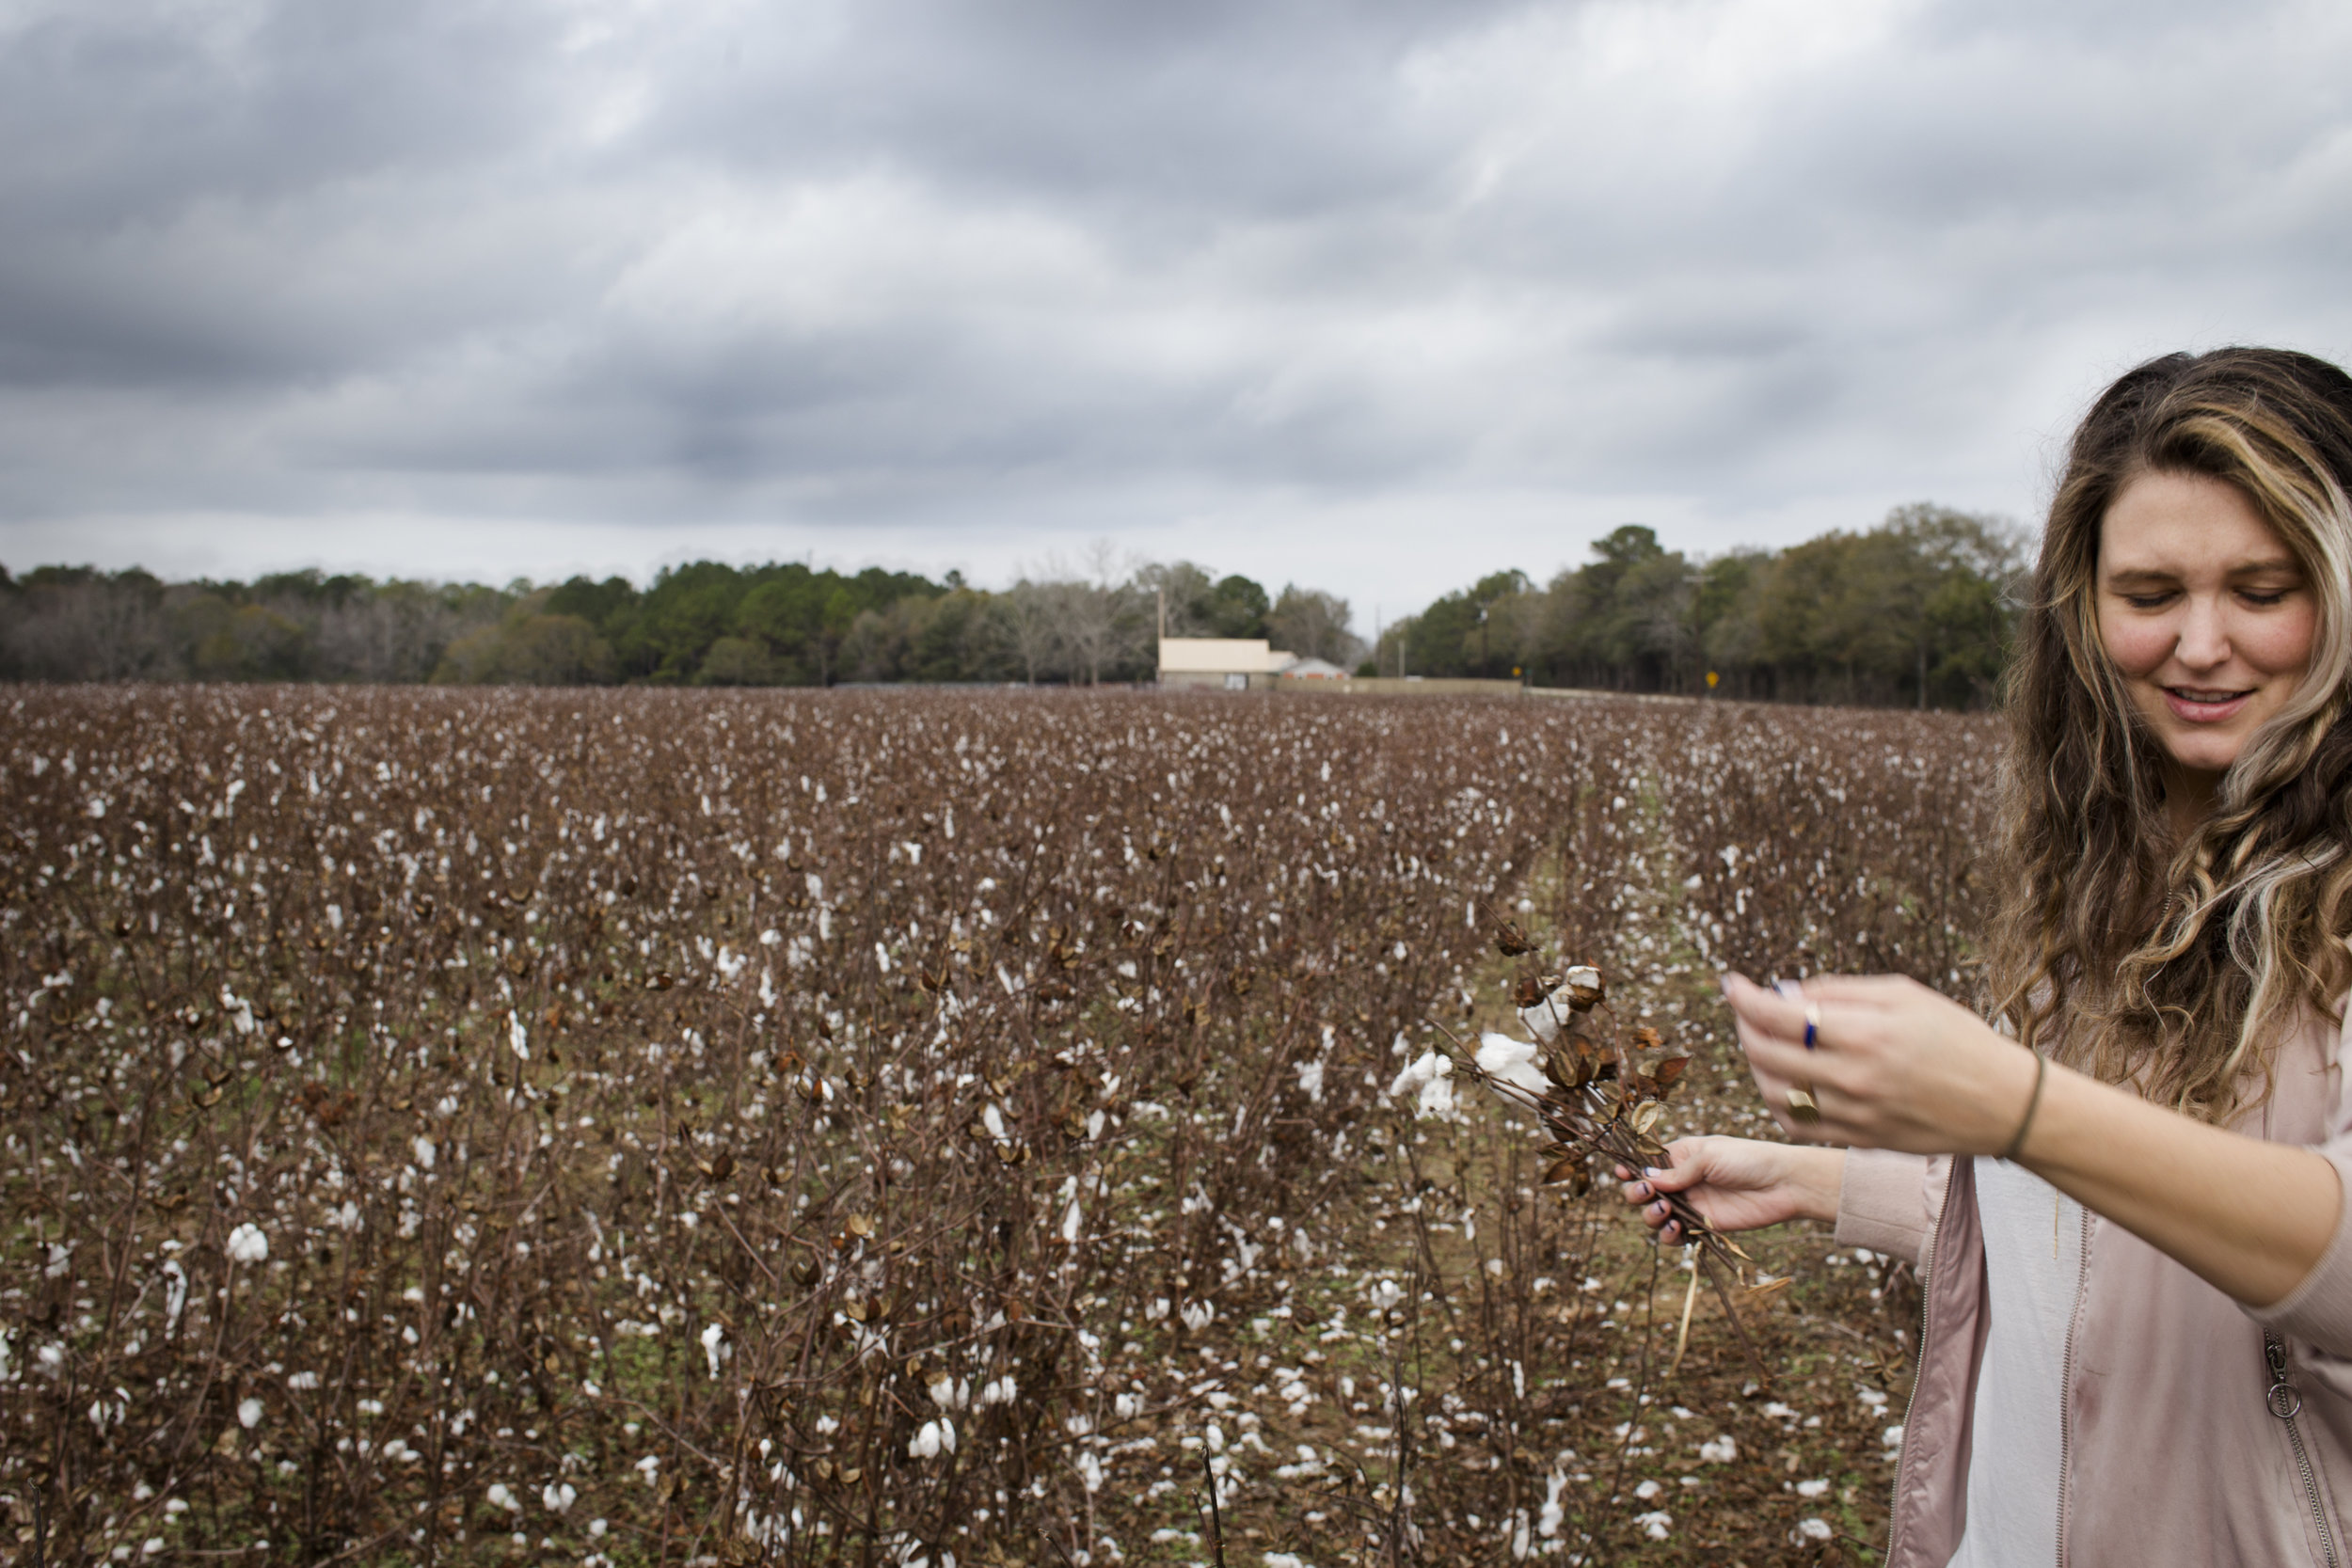 Clark among the cotton fields in Opp, Alabama, December 28, 2016